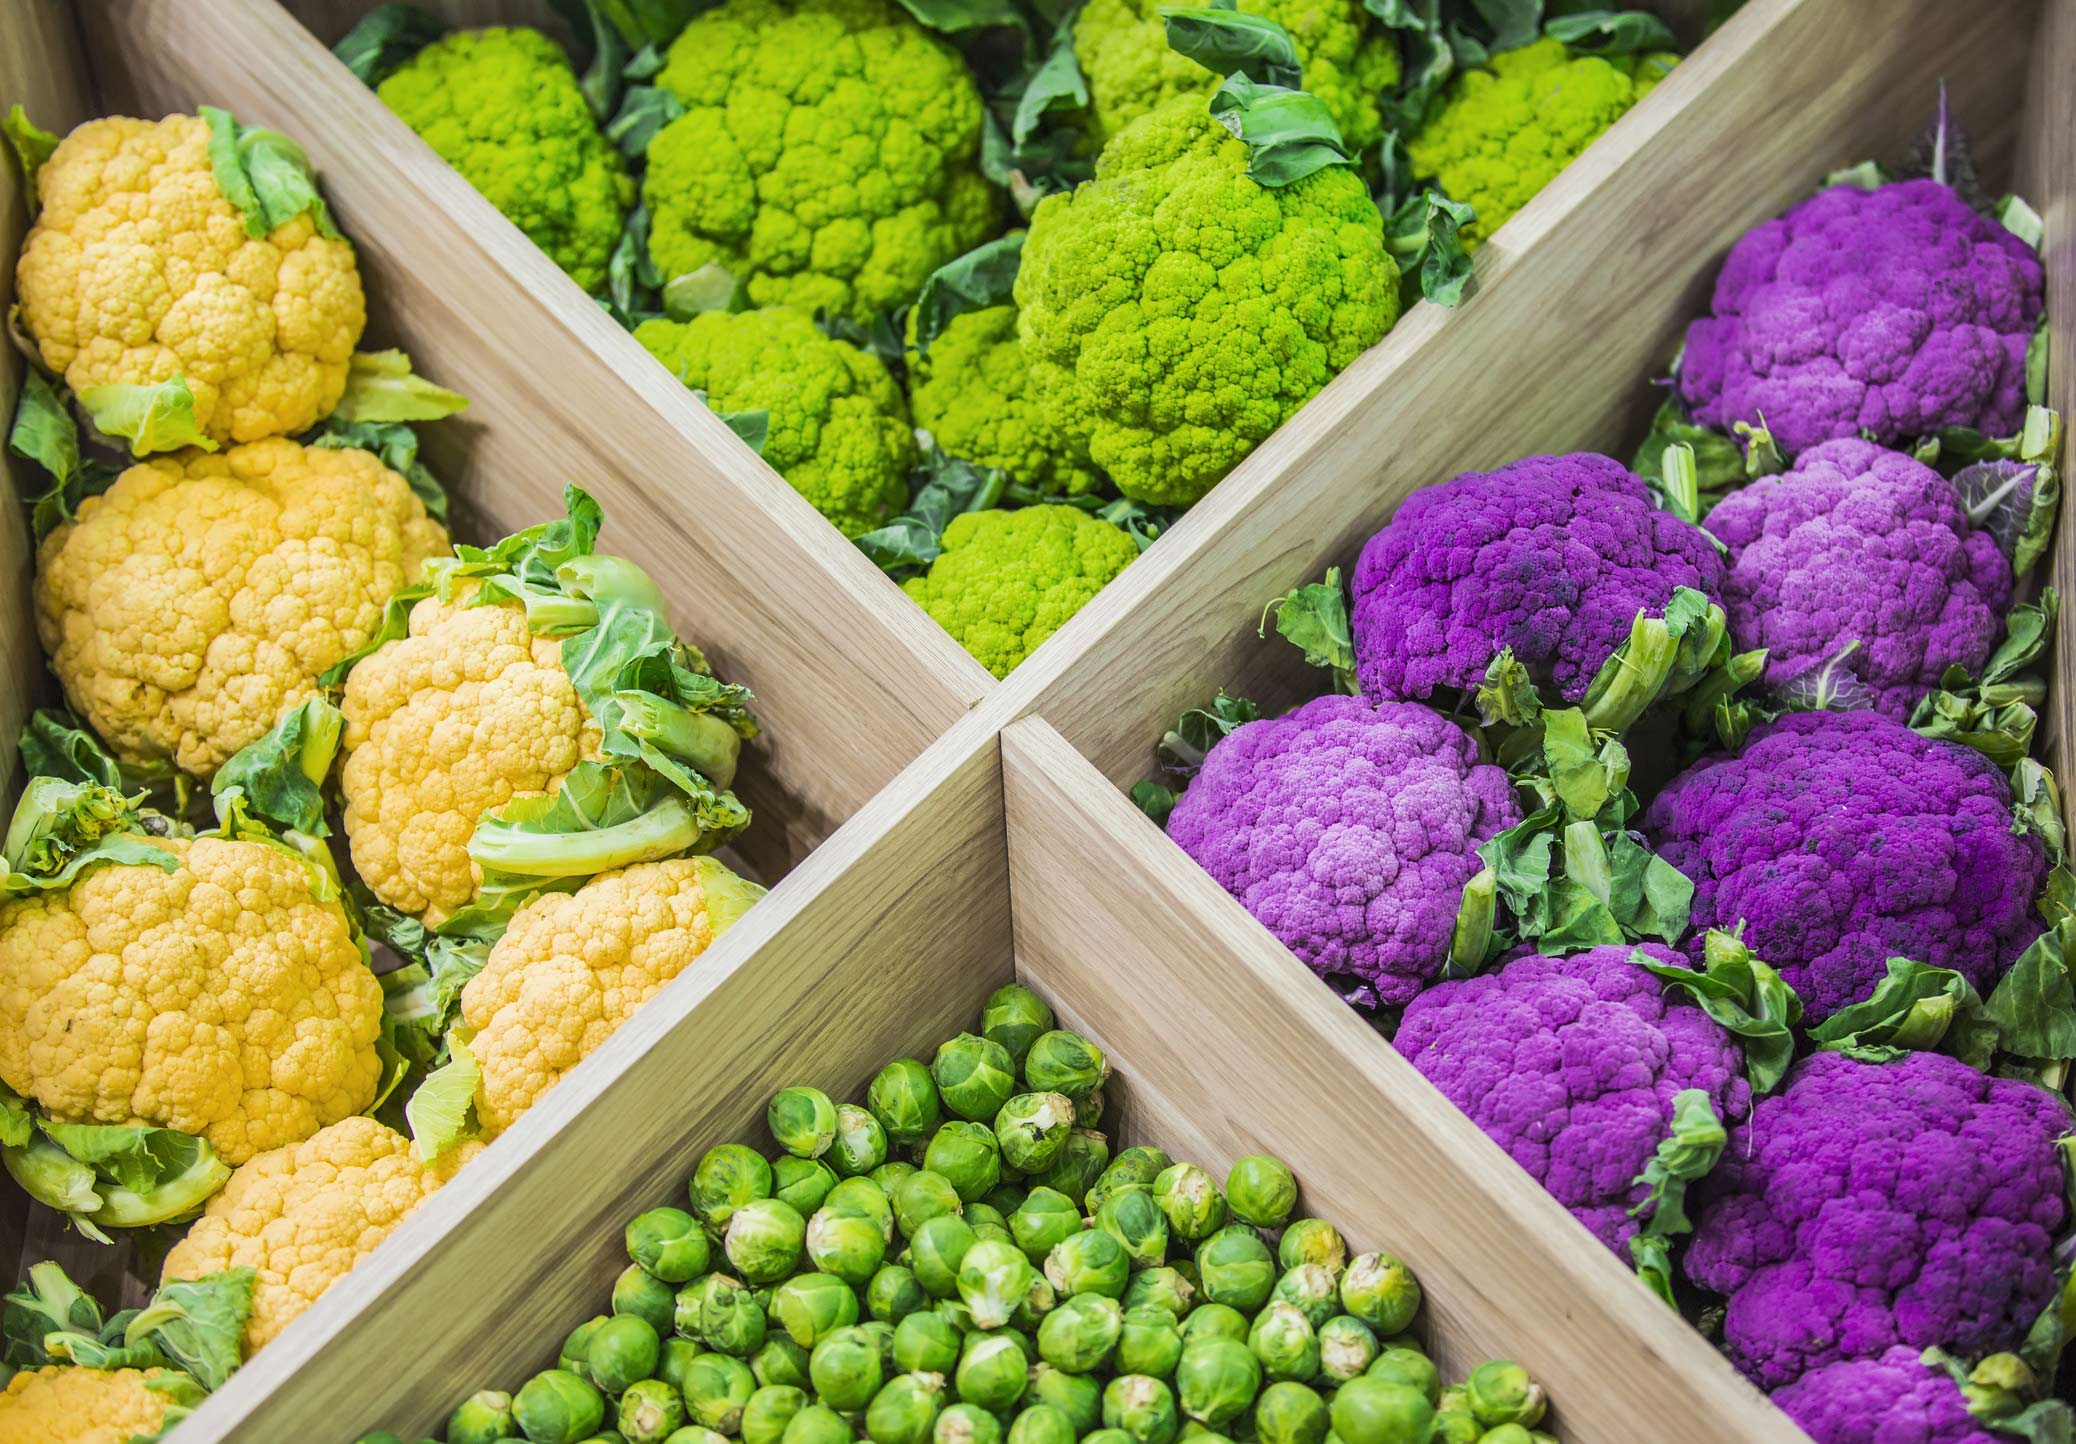 Colorful cruciferous vegetables